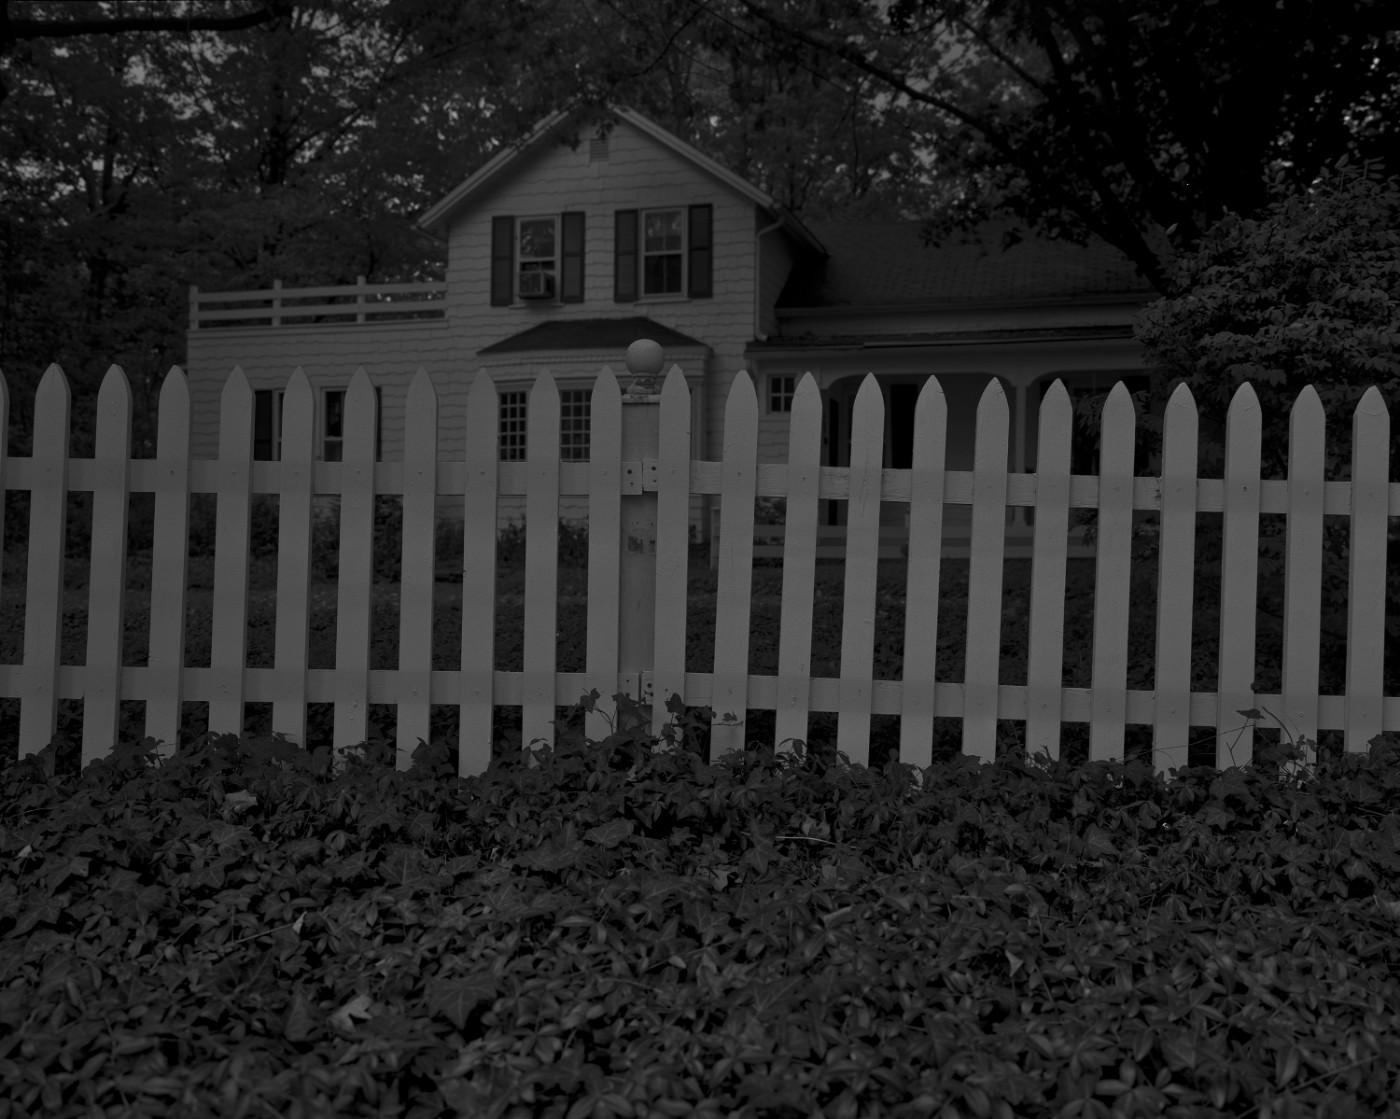 Dawoud Bey. Untitled #1 (Picket Fence and Farmhouse)